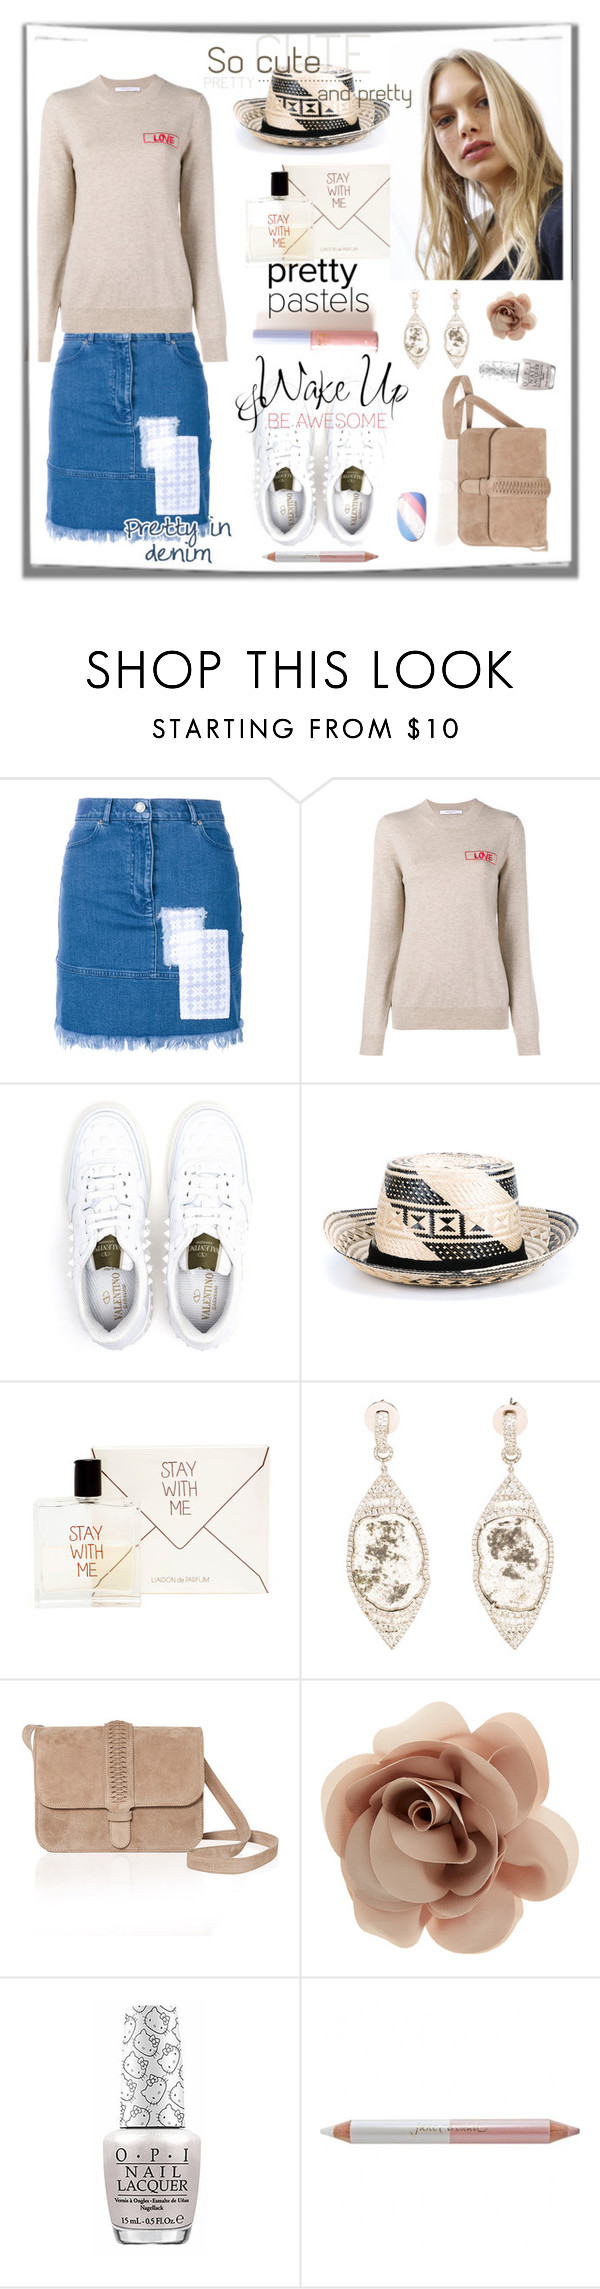 """""""The Pretty Things..."""" by sue-mes ❤ liked on Polyvore featuring House of Holland, Givenchy, Valentino, YOSUZI, Liaison De Parfum, Saqqara, GRACE Atelier De Luxe, Accessorize, OPI and Jane Iredale"""